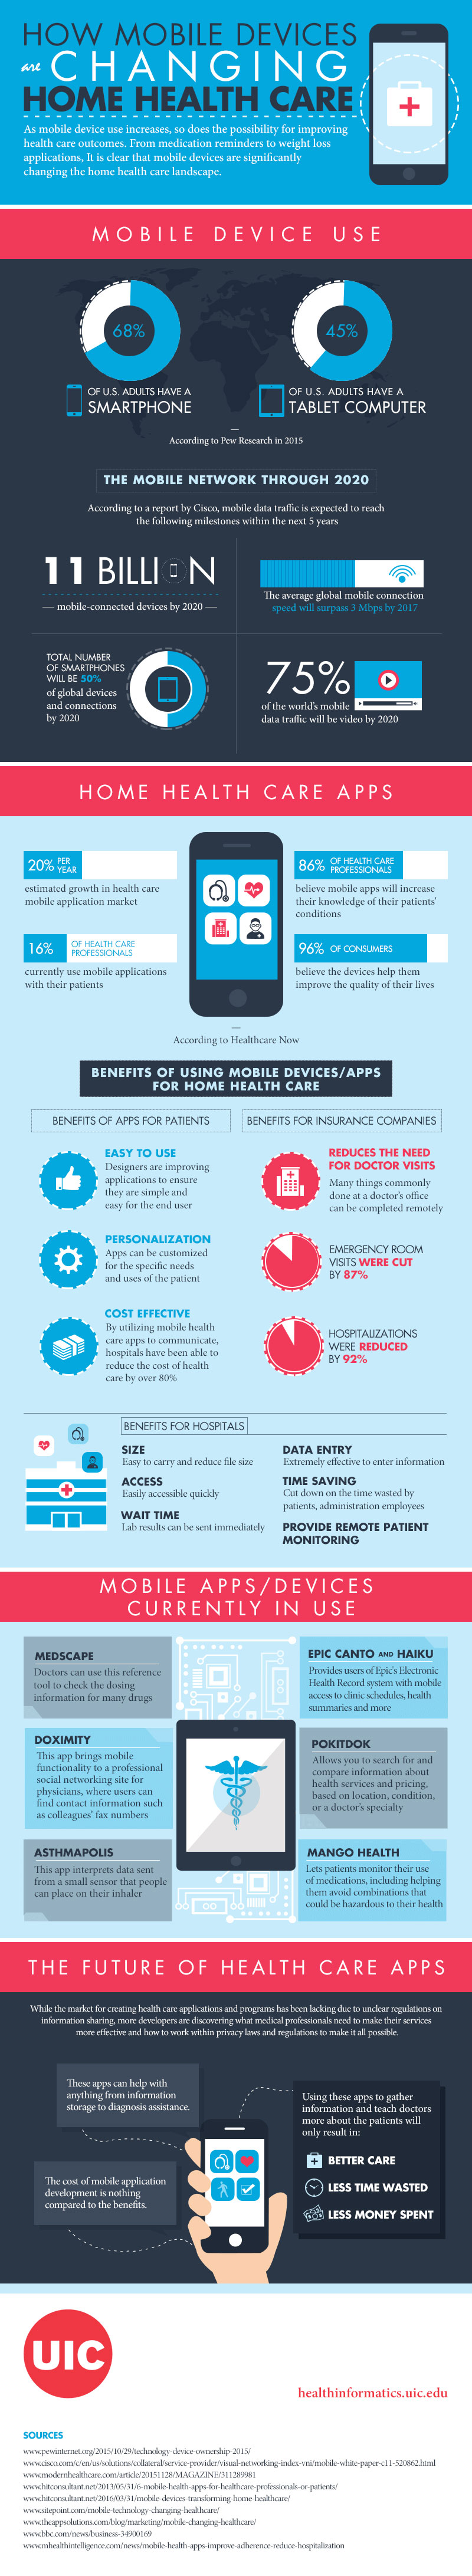 Mobile Devices and Health Care Apps: Changing the Face of Health Delivery - Infographic